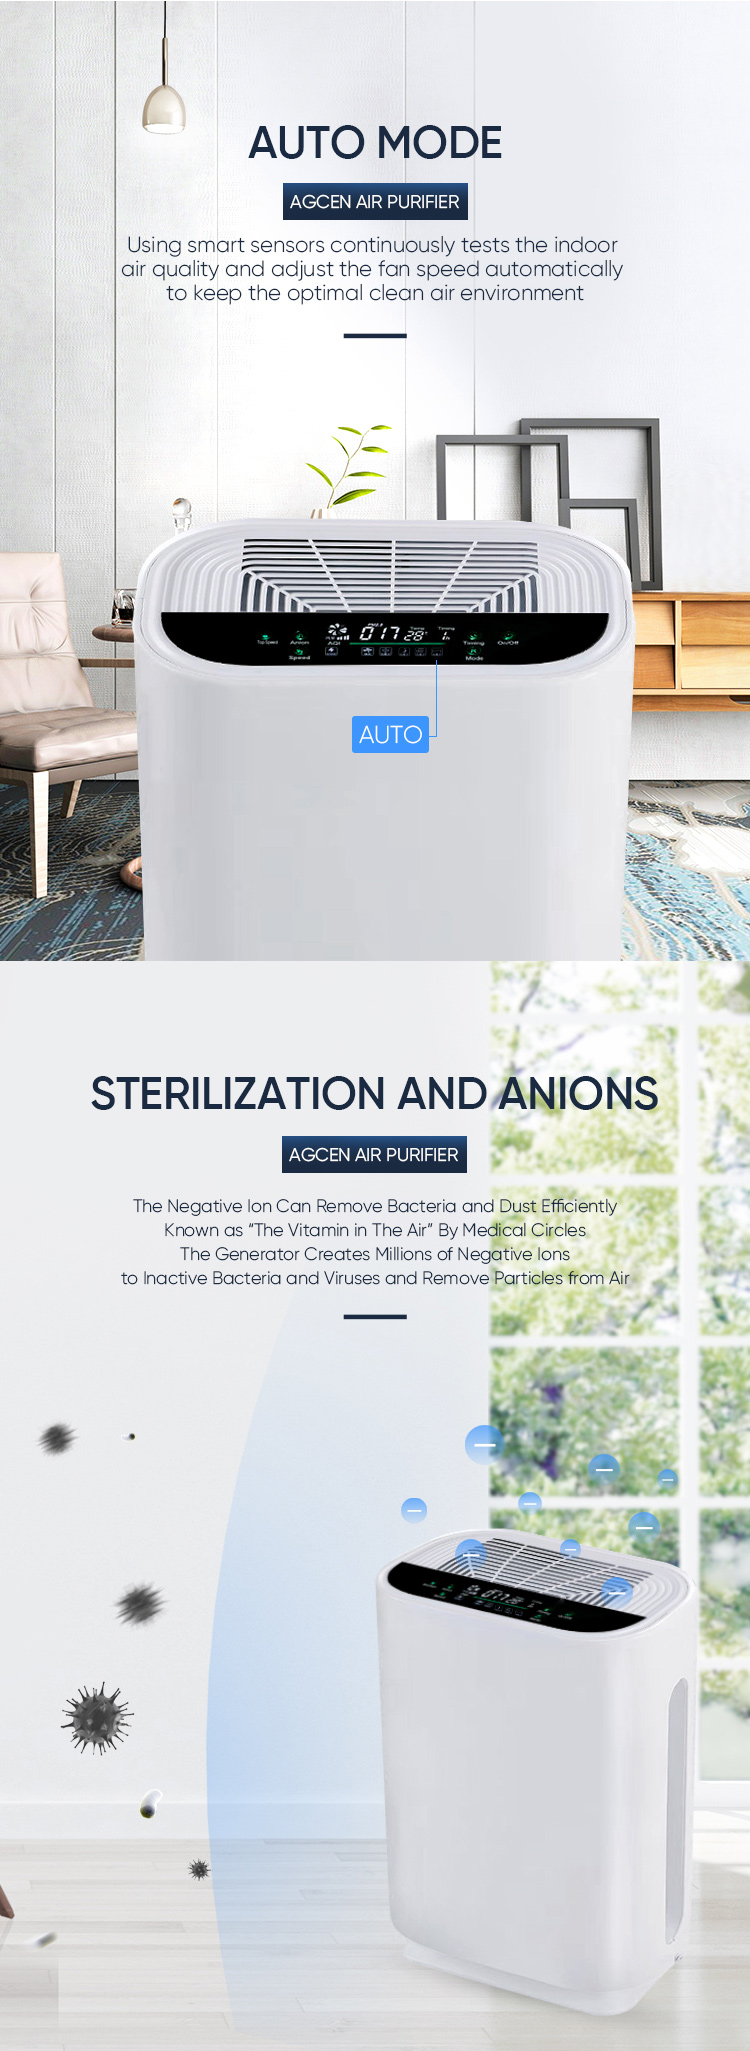 2019 OEM Smart Home Air Freshener Machine HEPA Filter PM 2.5 Air Cleaner Air Purifier Home Small Room